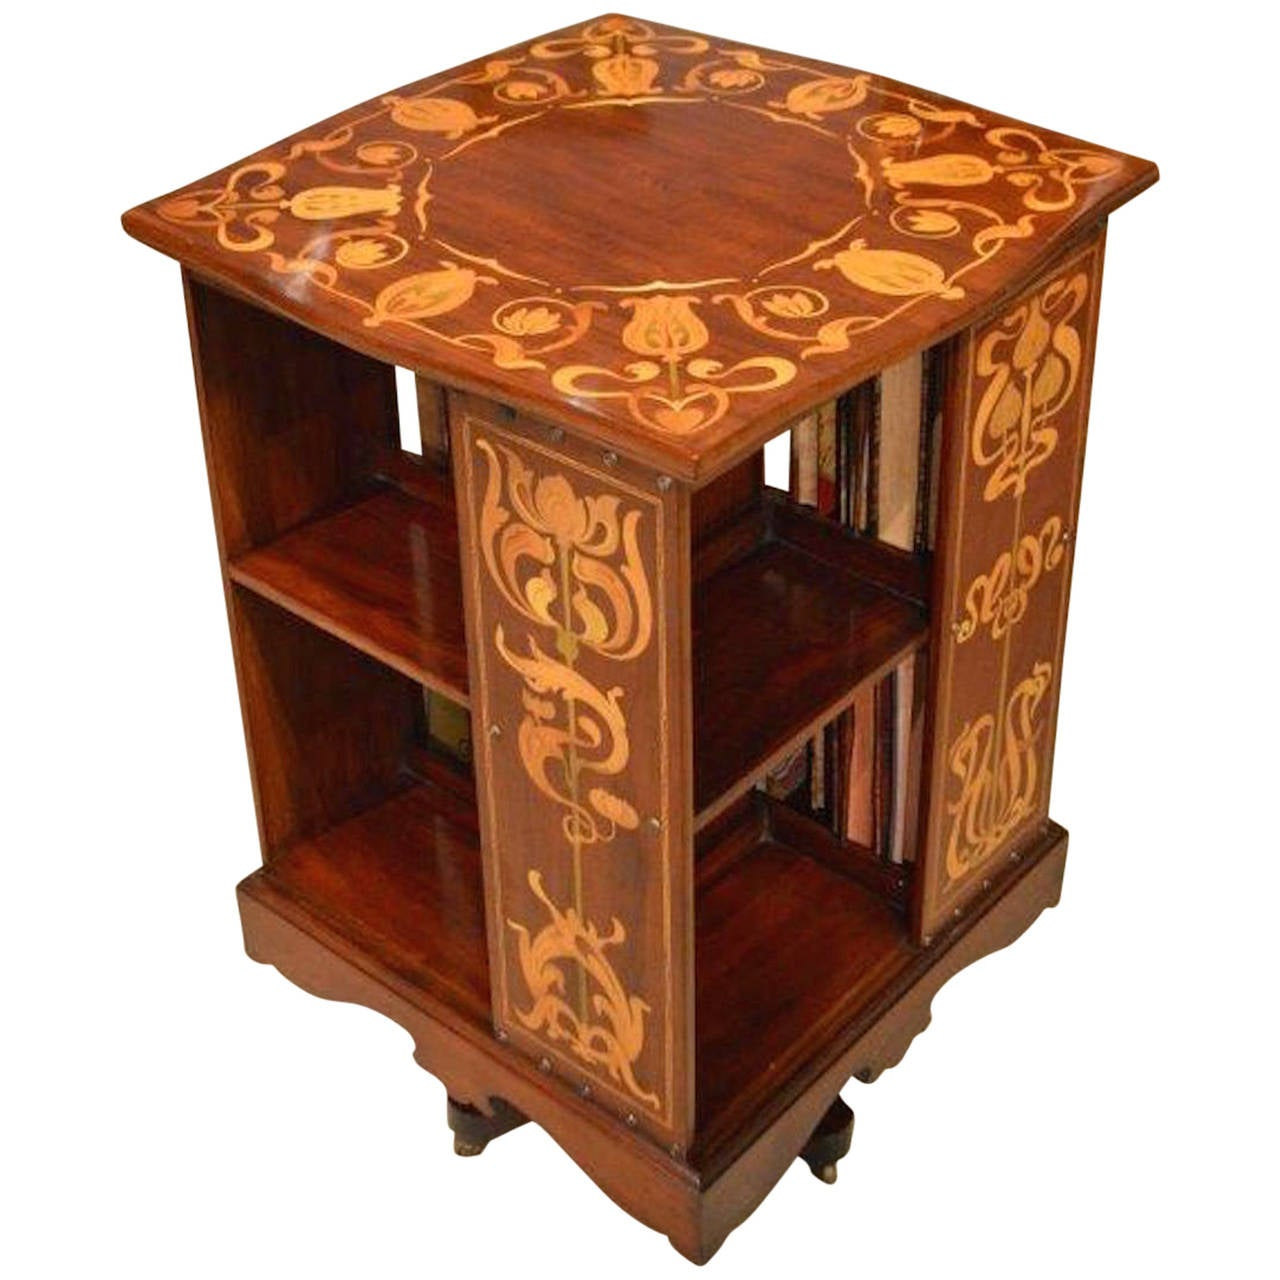 arts and crafts mahogany revolving bookcase by shapland. Black Bedroom Furniture Sets. Home Design Ideas